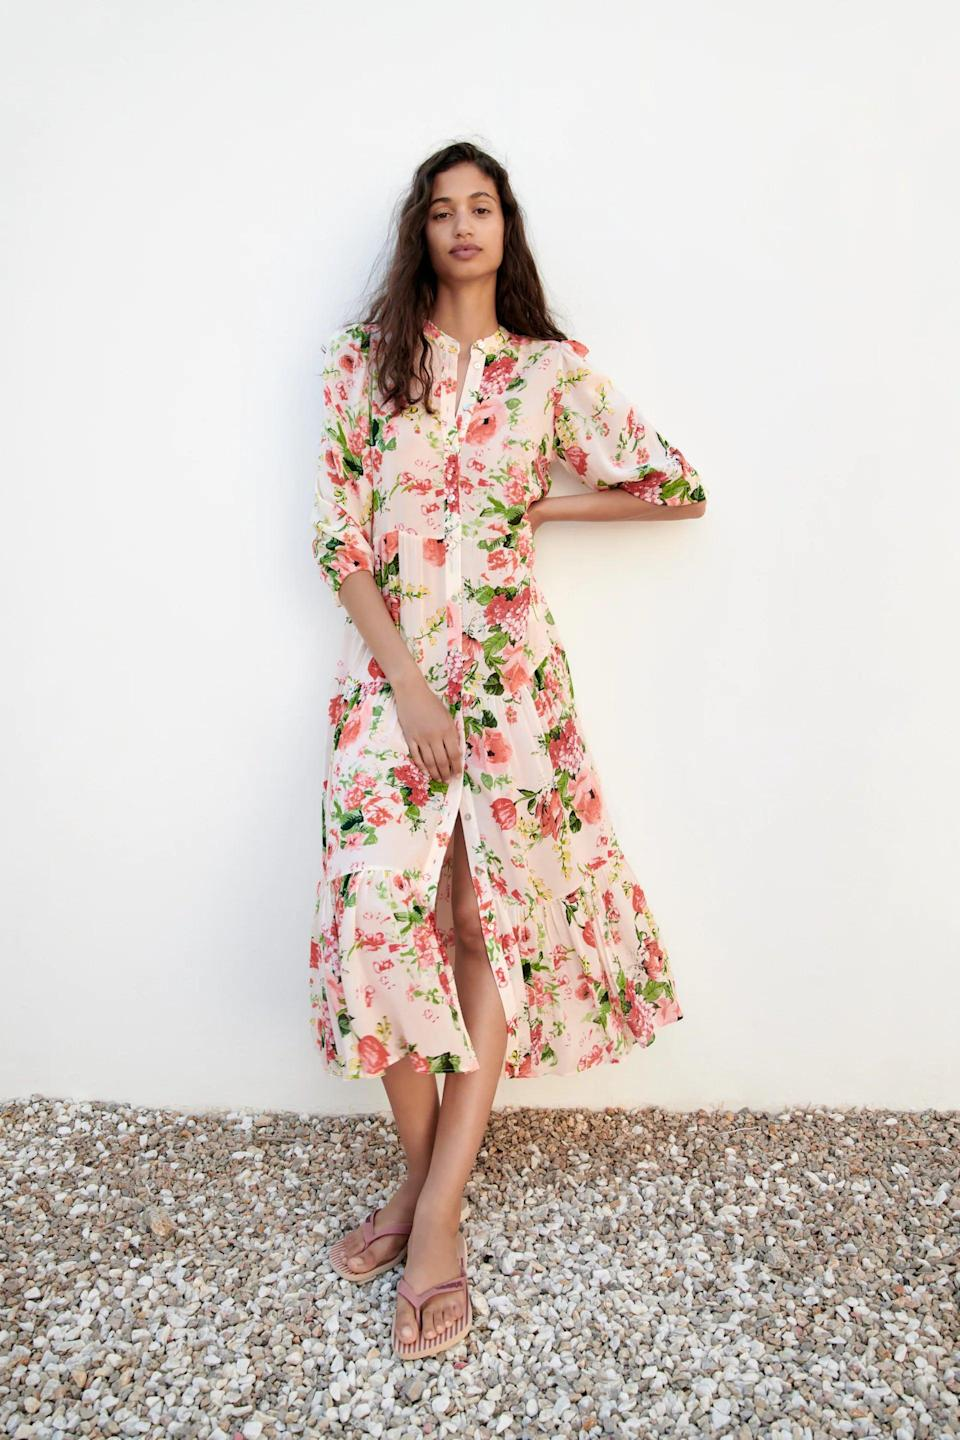 <p>Prepare to standout in this <span>Zara Floral Print Dress</span> ($70). It's pretty floral print and cute ruffles will surely turn heads.</p>